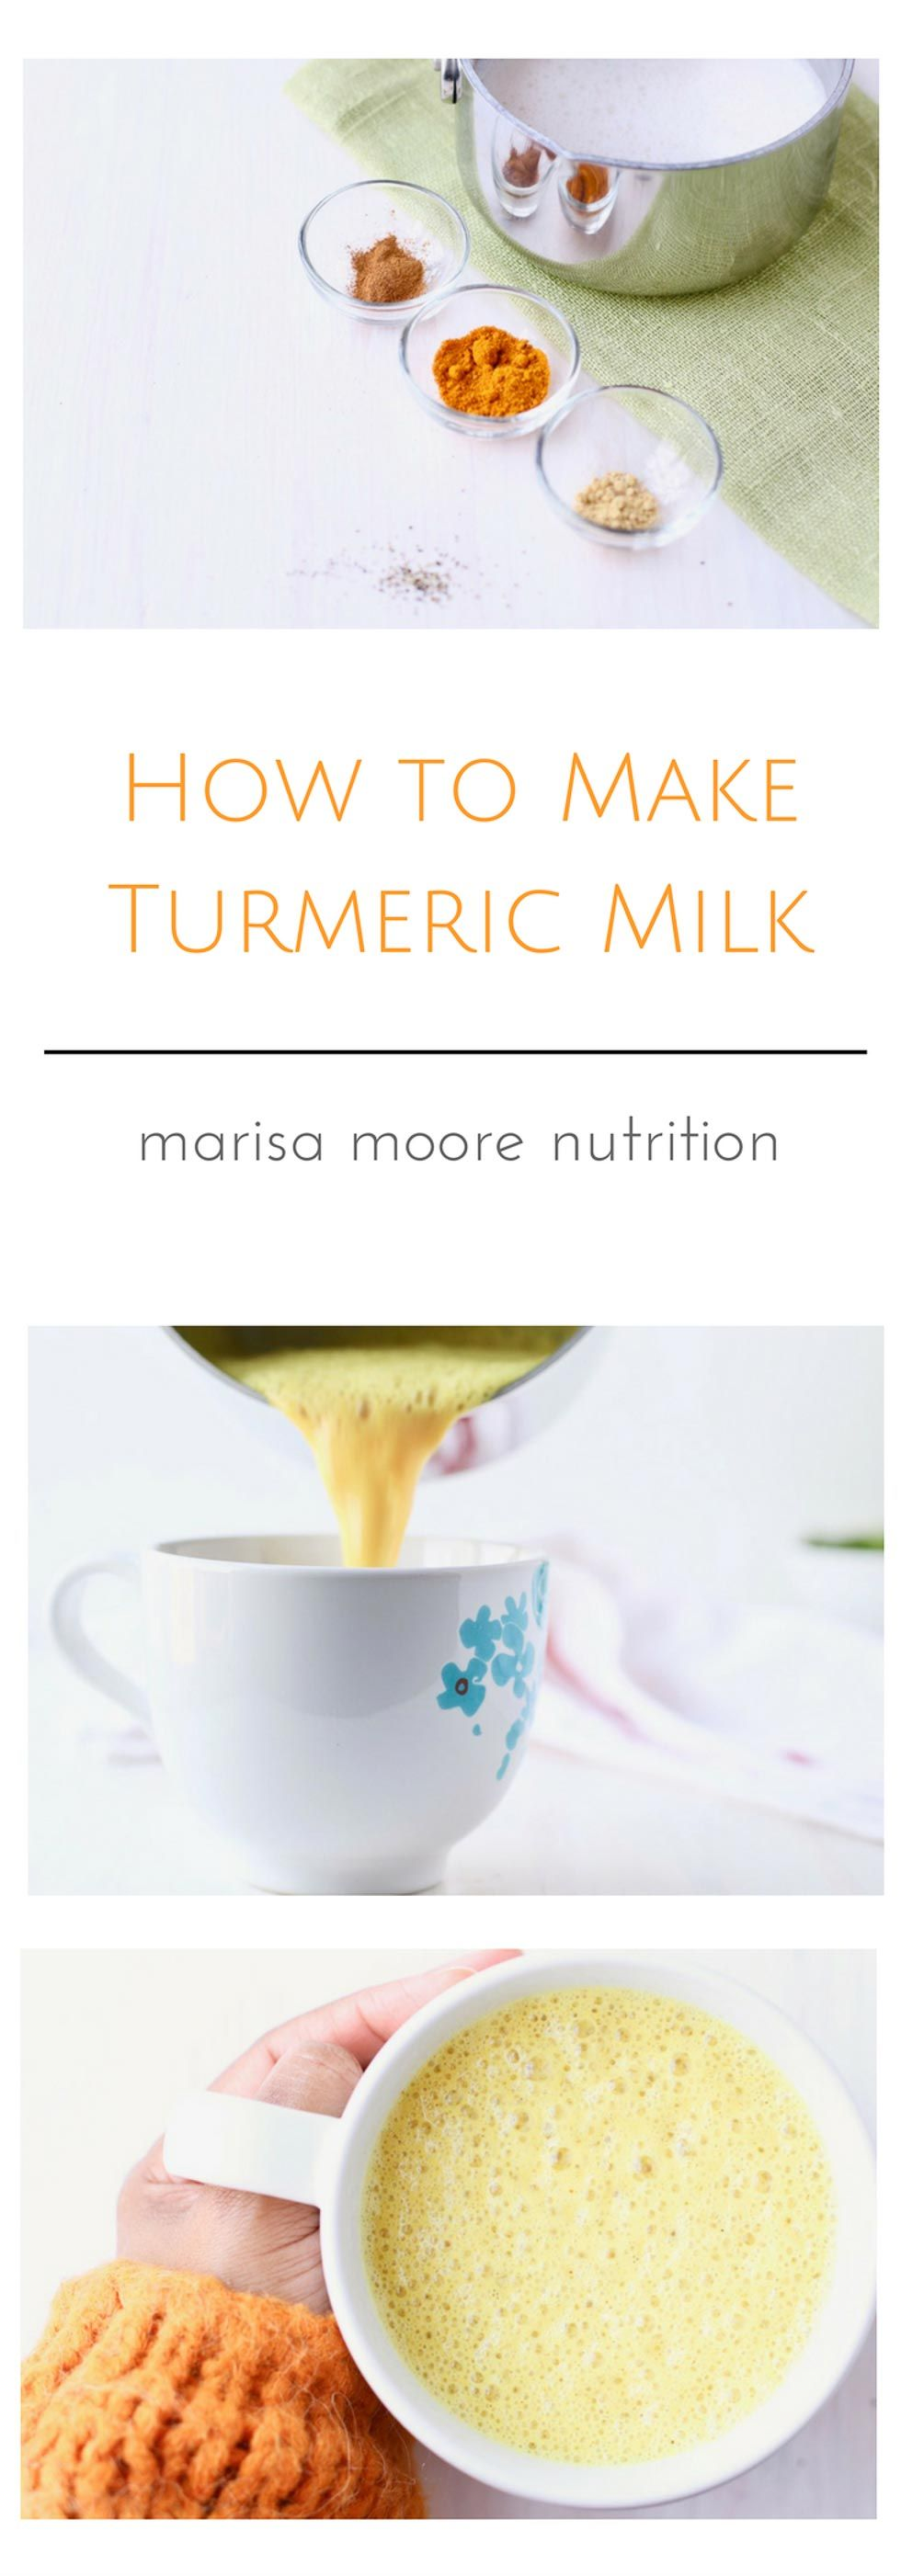 How to Make Turmeric Milk - Golden Milk Latte